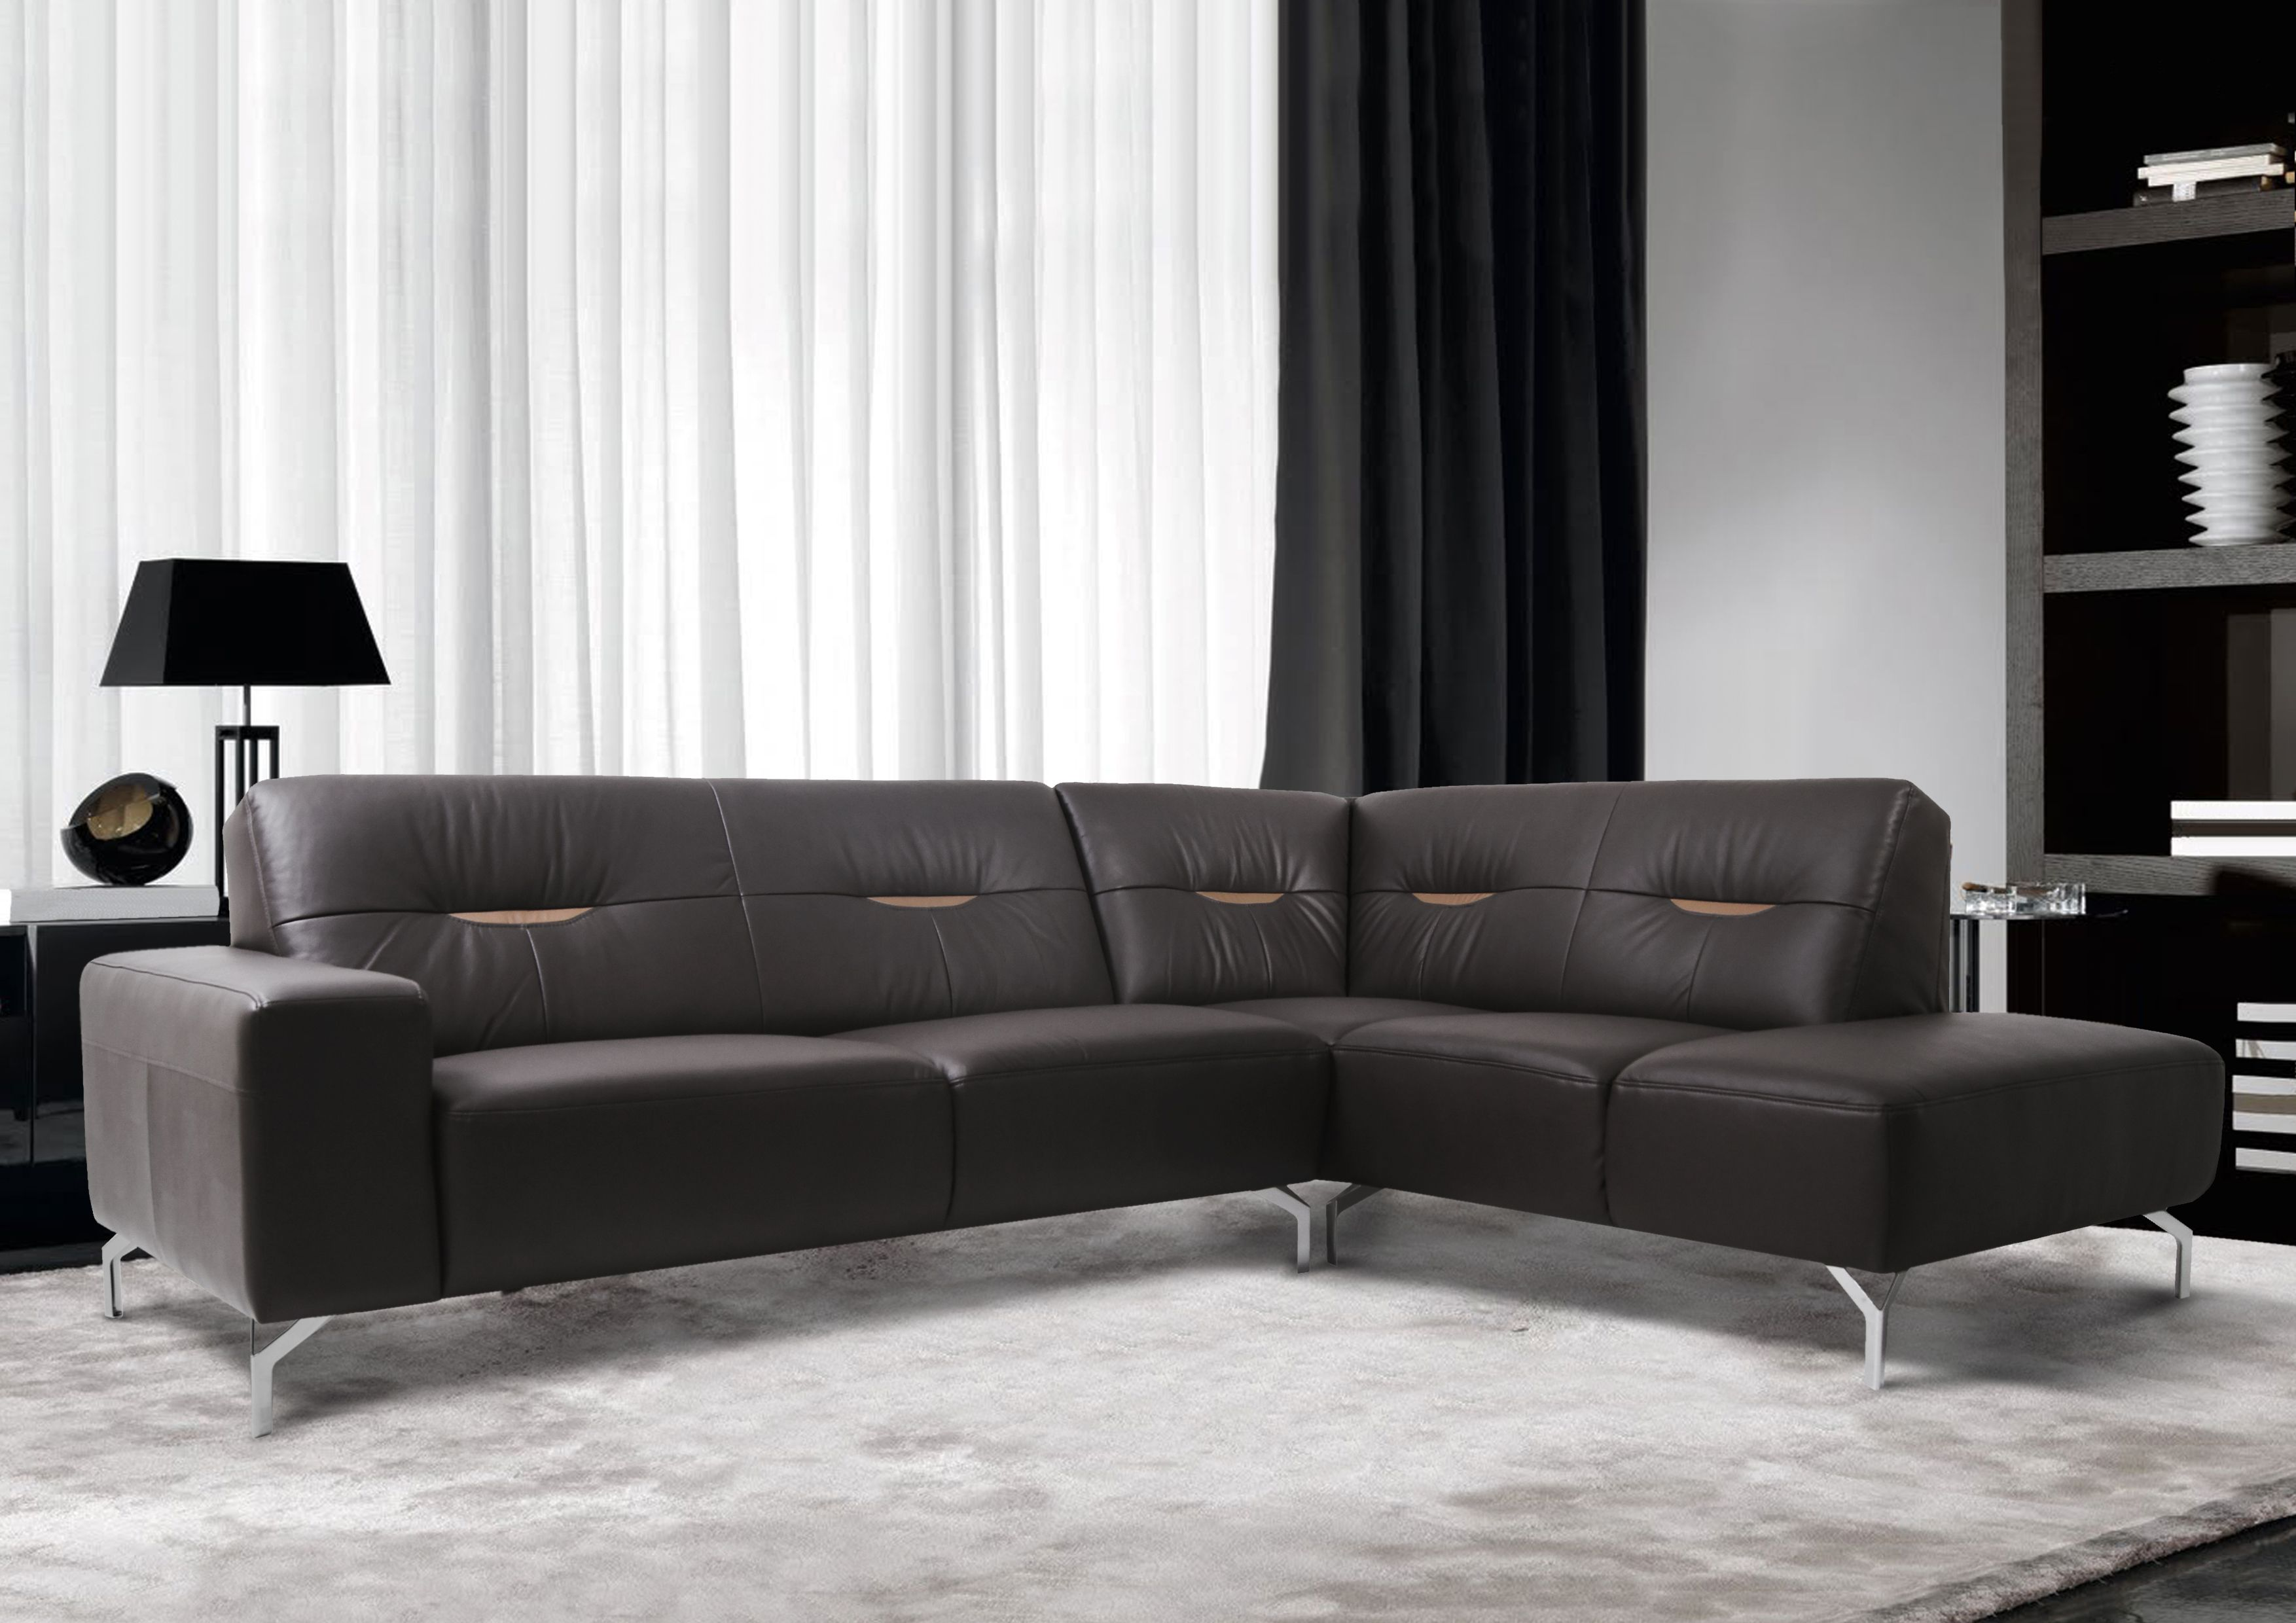 UMBRIA SOFA With its simple classic design the Umbria